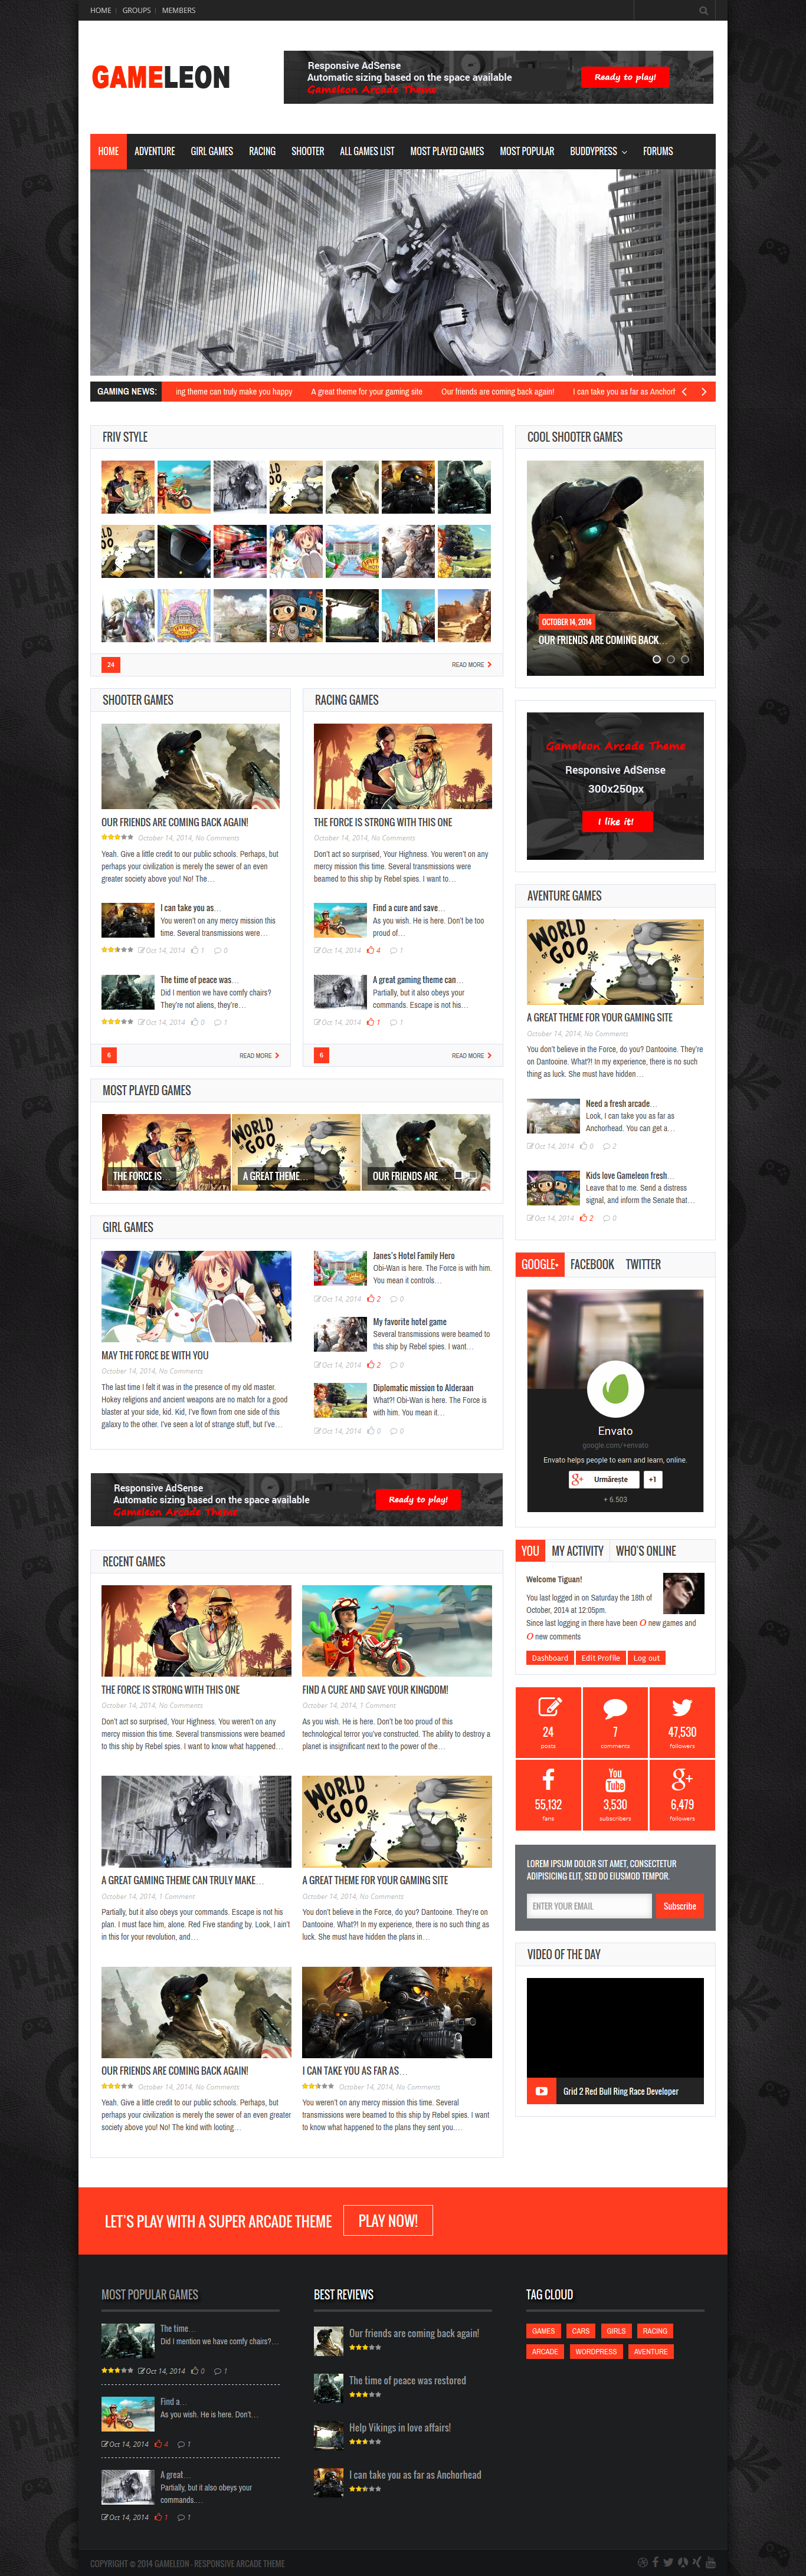 Gameleon - Best Premium Gaming WordPress Theme